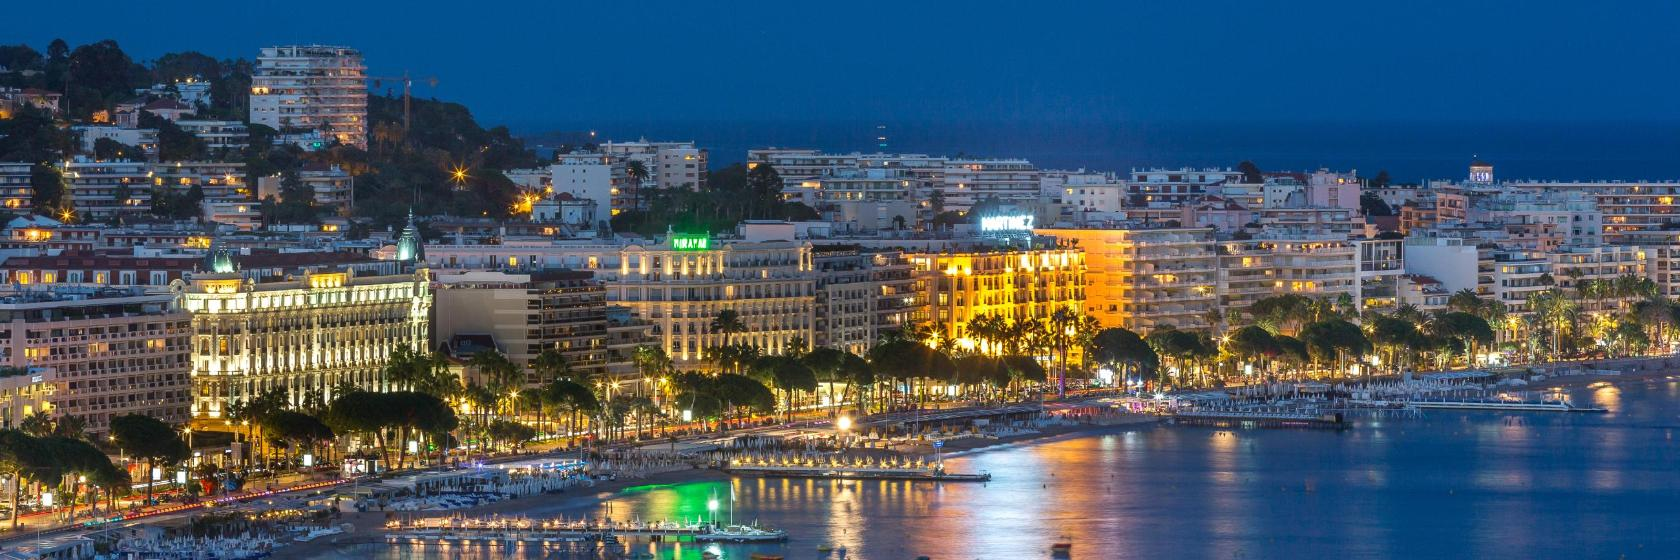 Cannes, Online Booking for Accommodation in France